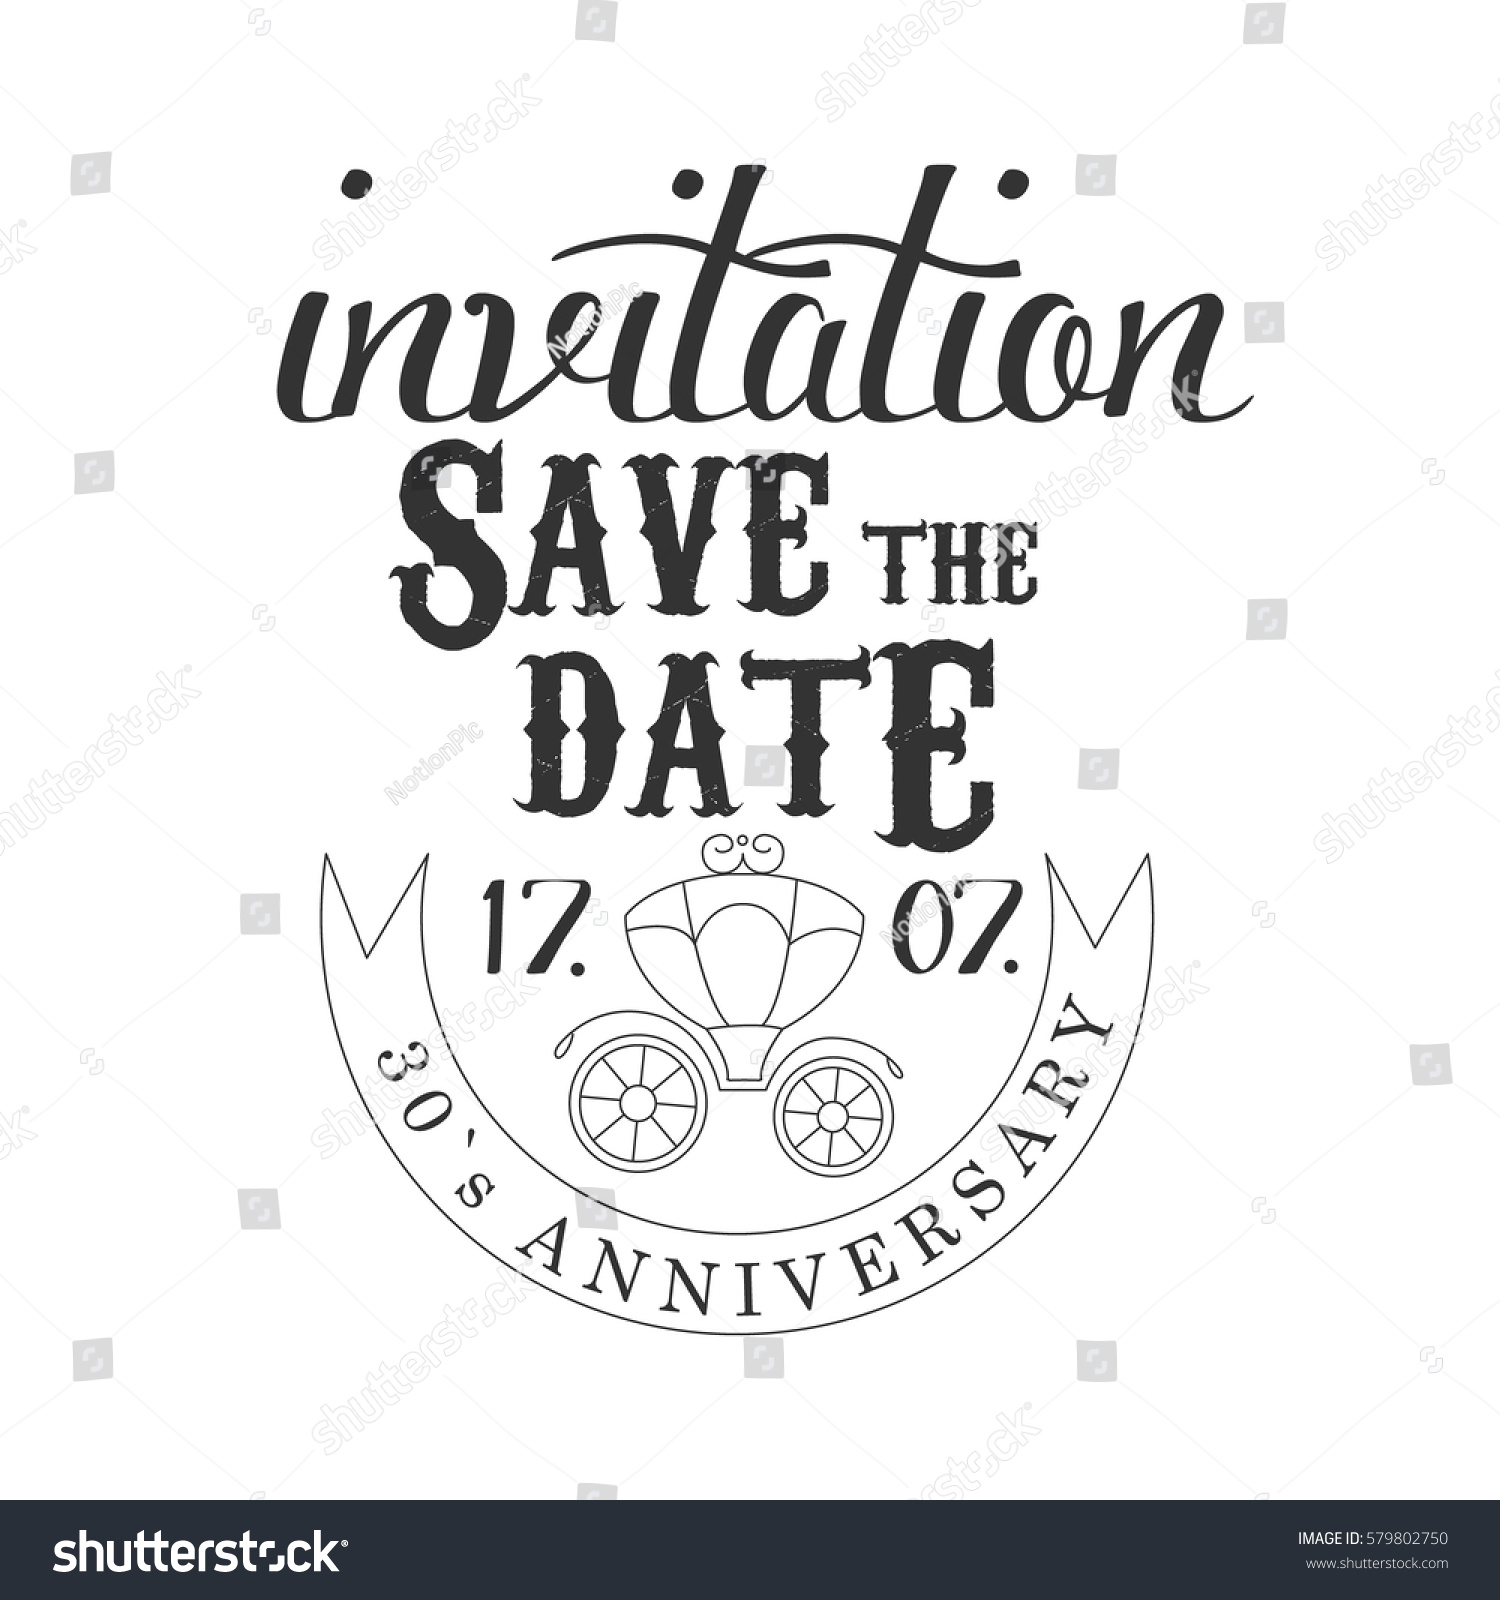 Anniversary party black white invitation card stock vector anniversary party black and white invitation card design template with calligraphic text and carriage stopboris Gallery